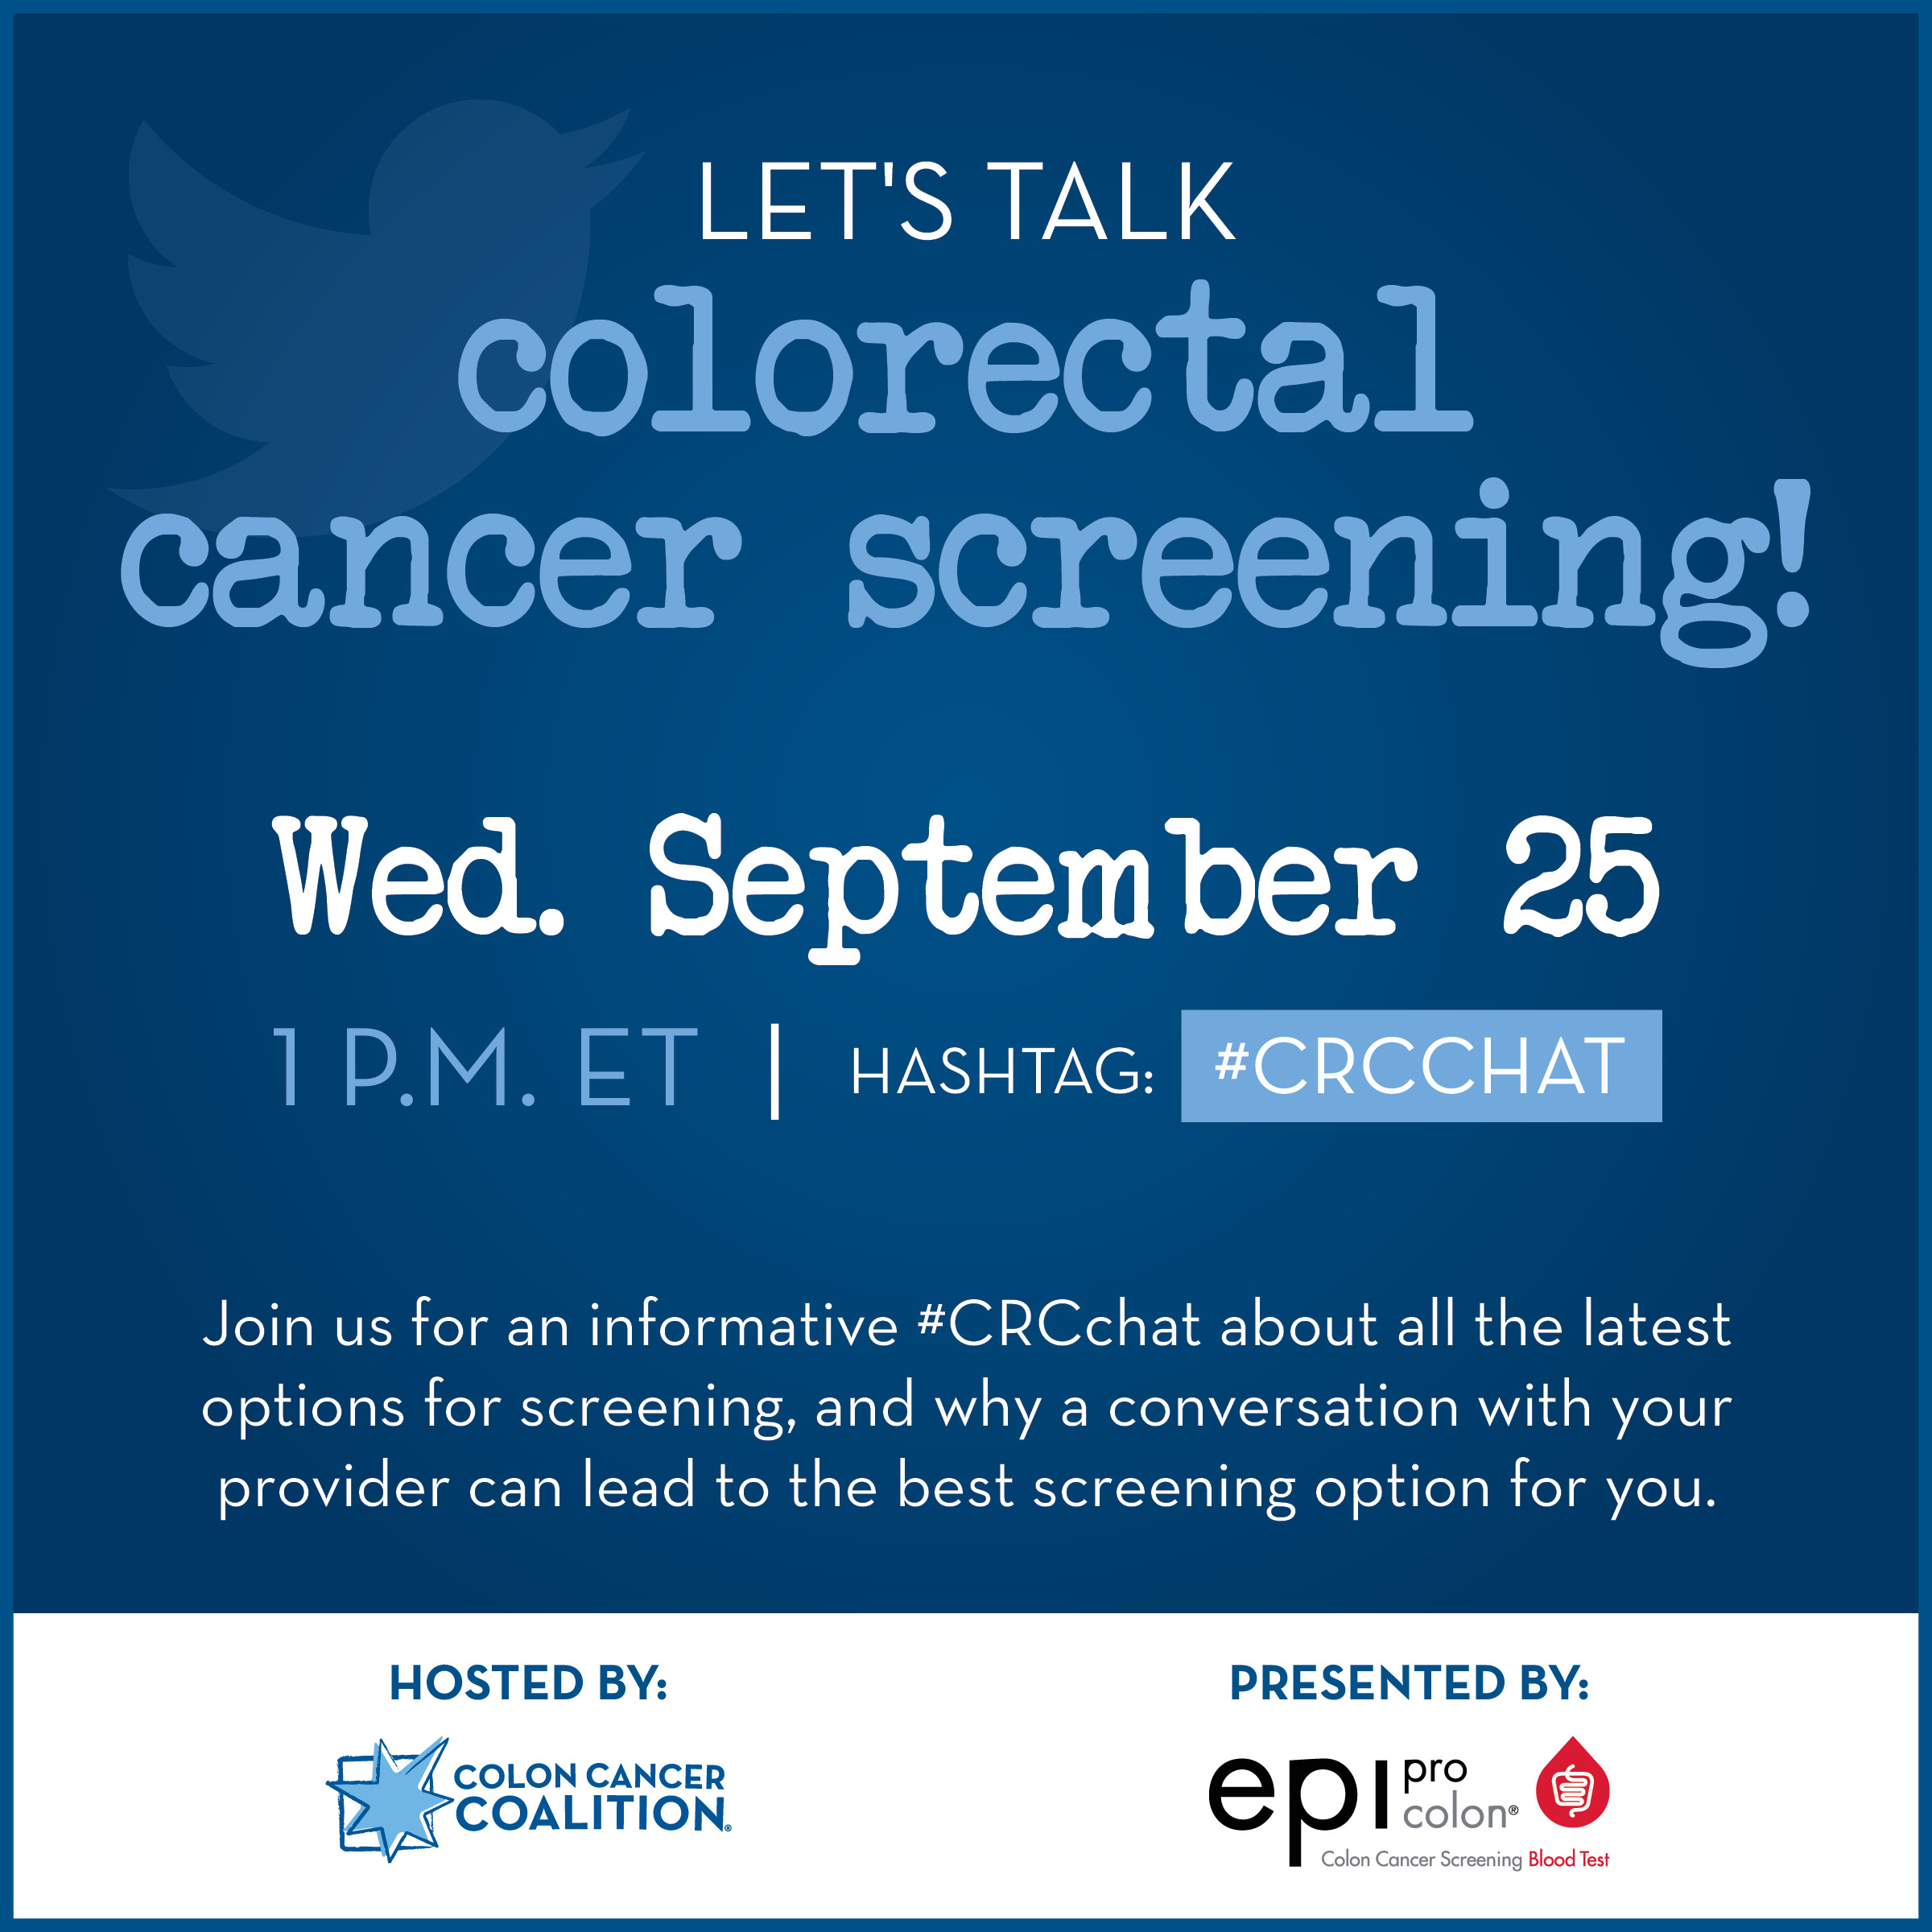 Twitter Chat Colorectal Cancer Screening Colon Cancer Coalition